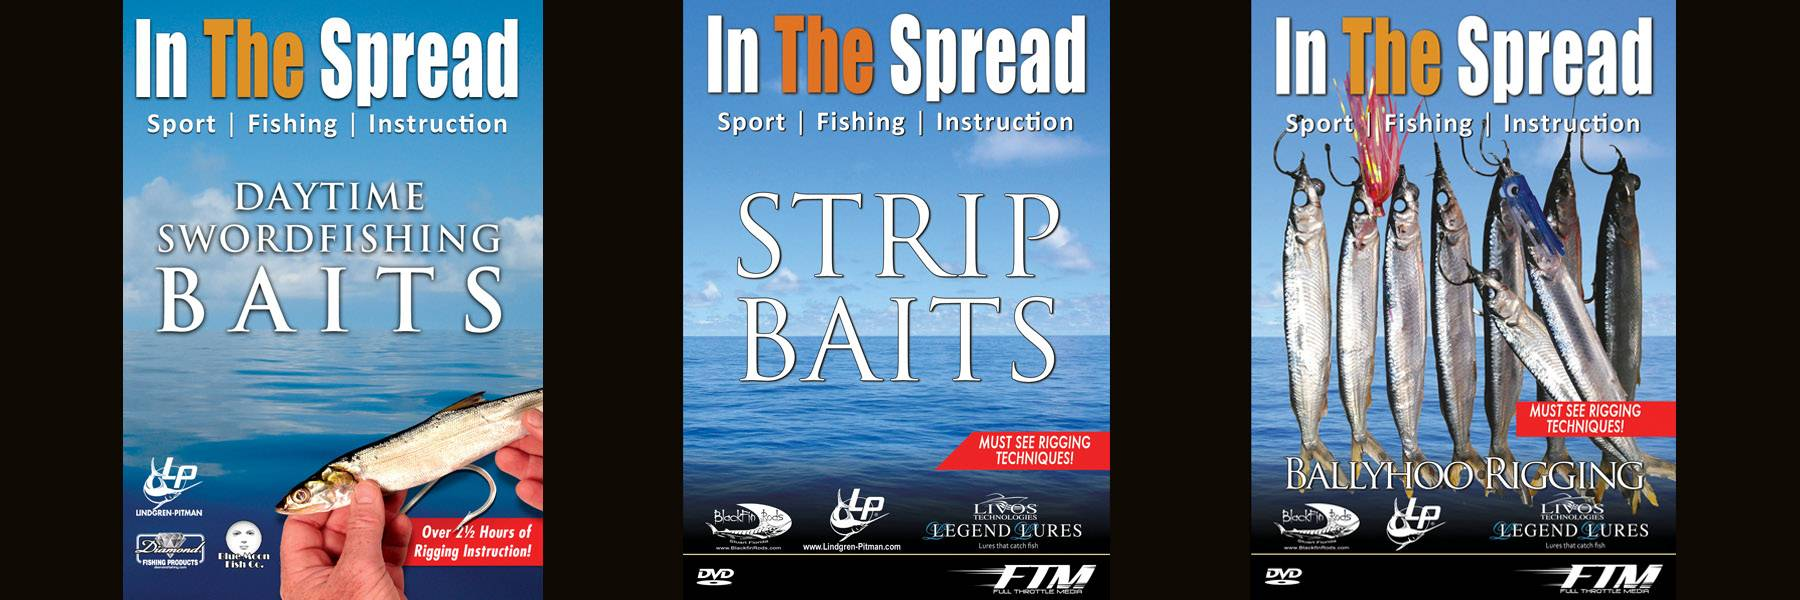 Bait Rigging - In The Spread